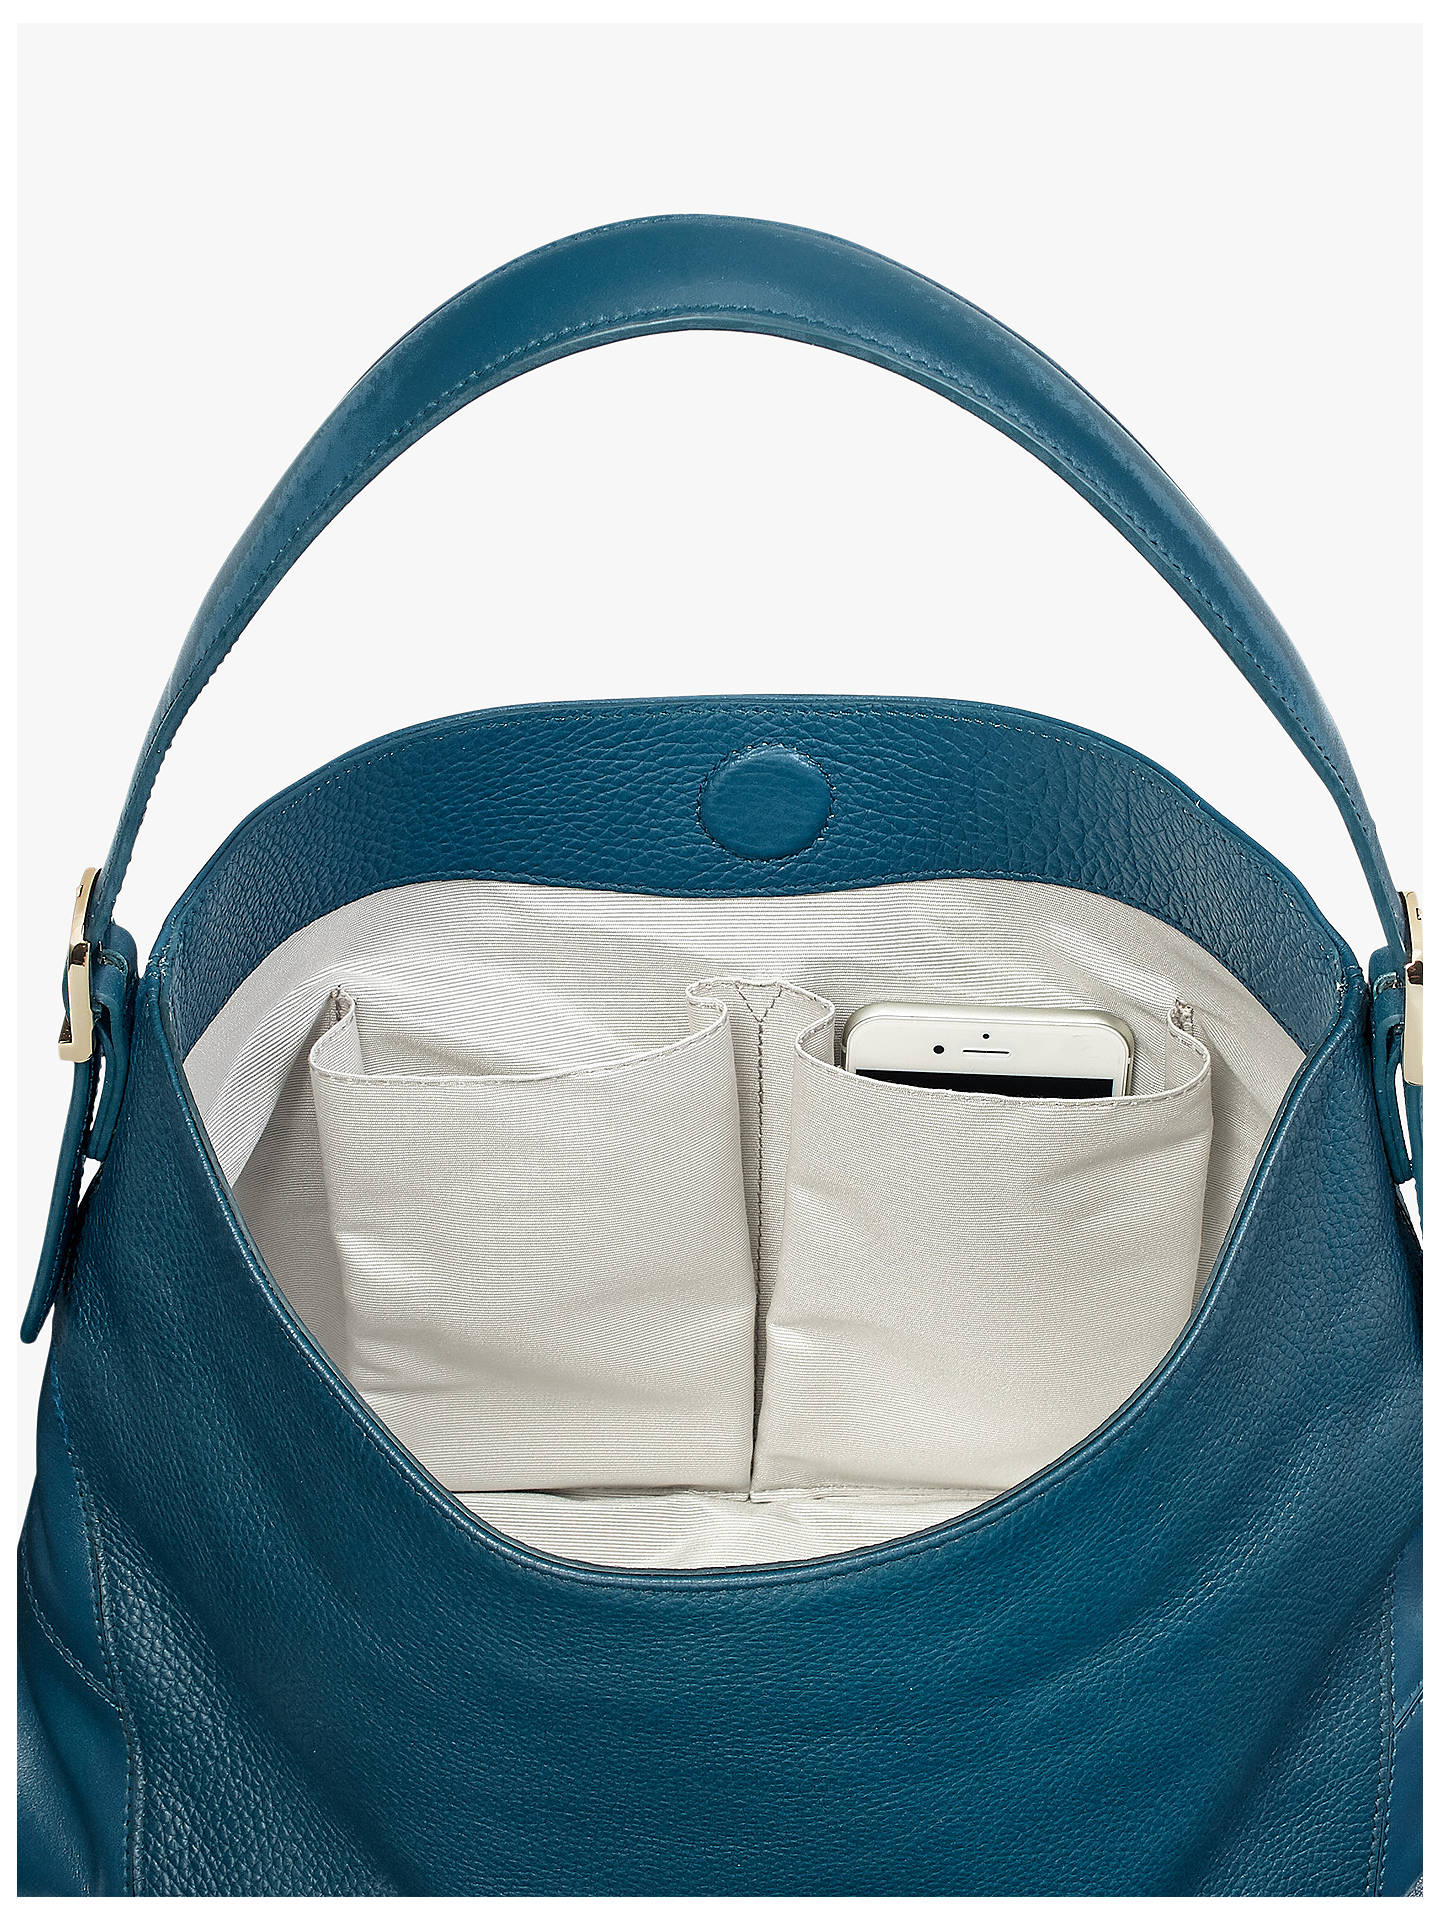 e83a9317599a ... Buy Aspinal of London Small Leather Hobo Bag